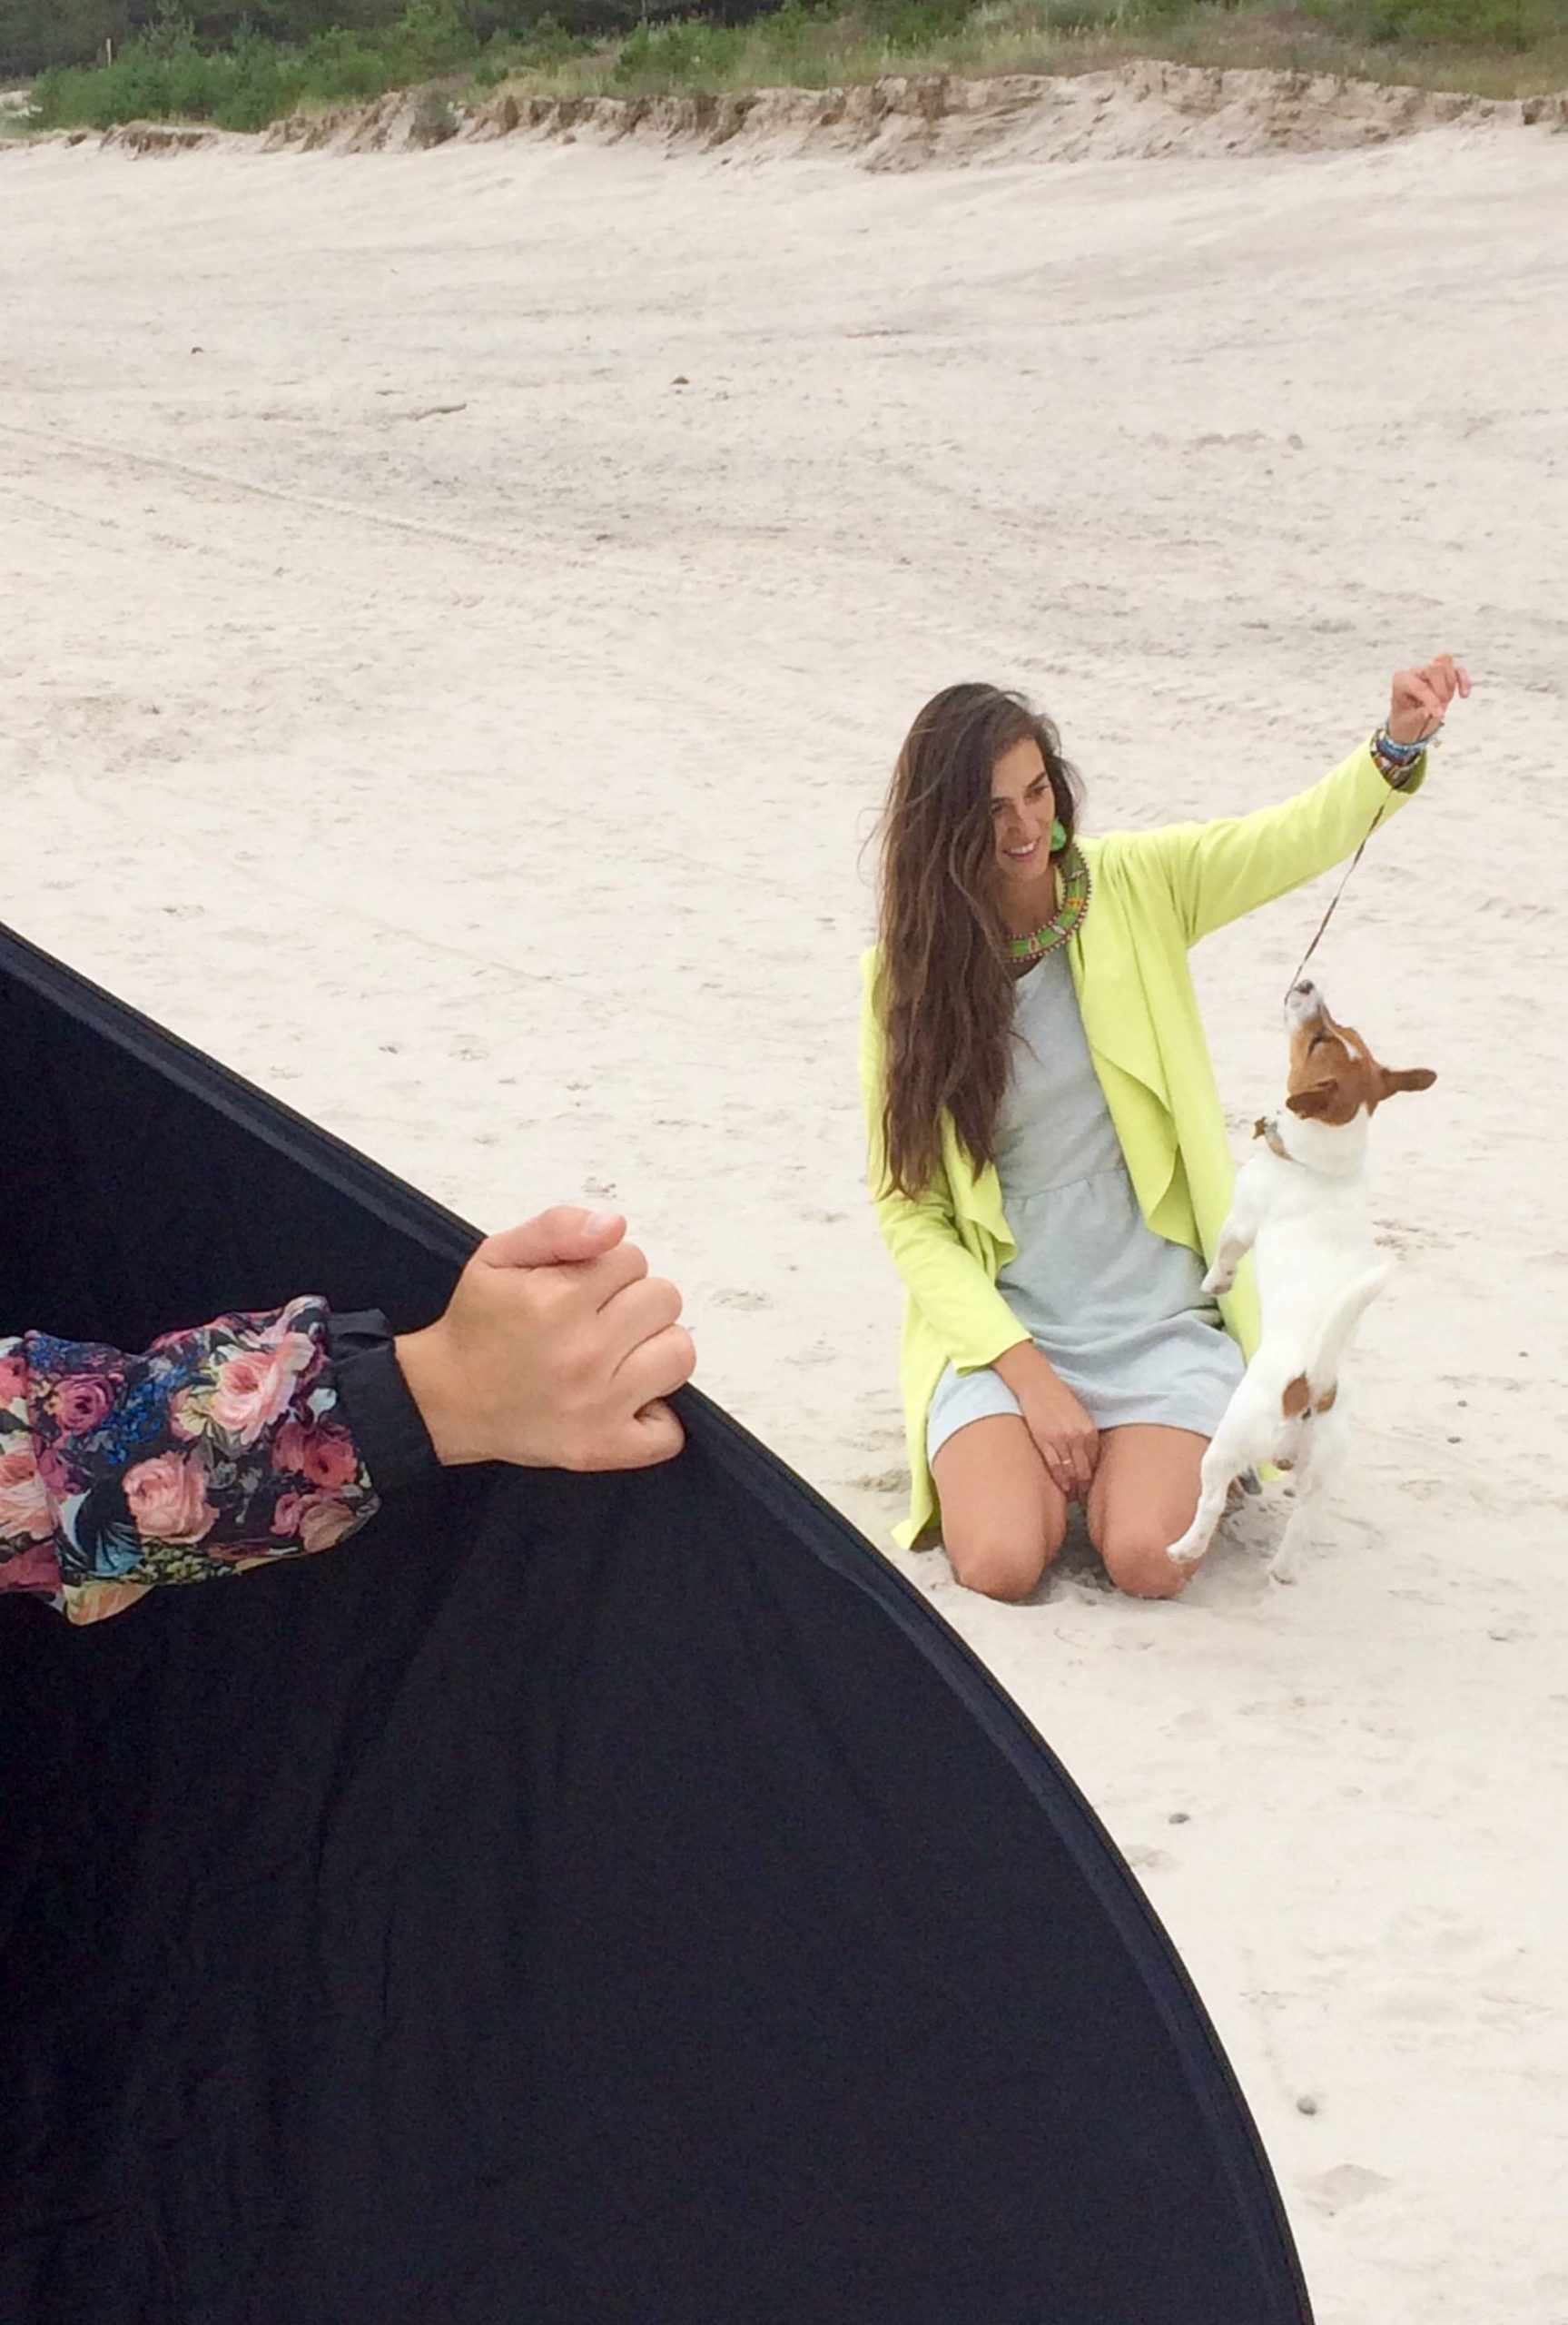 Surf Fashion - Behind The Scenes